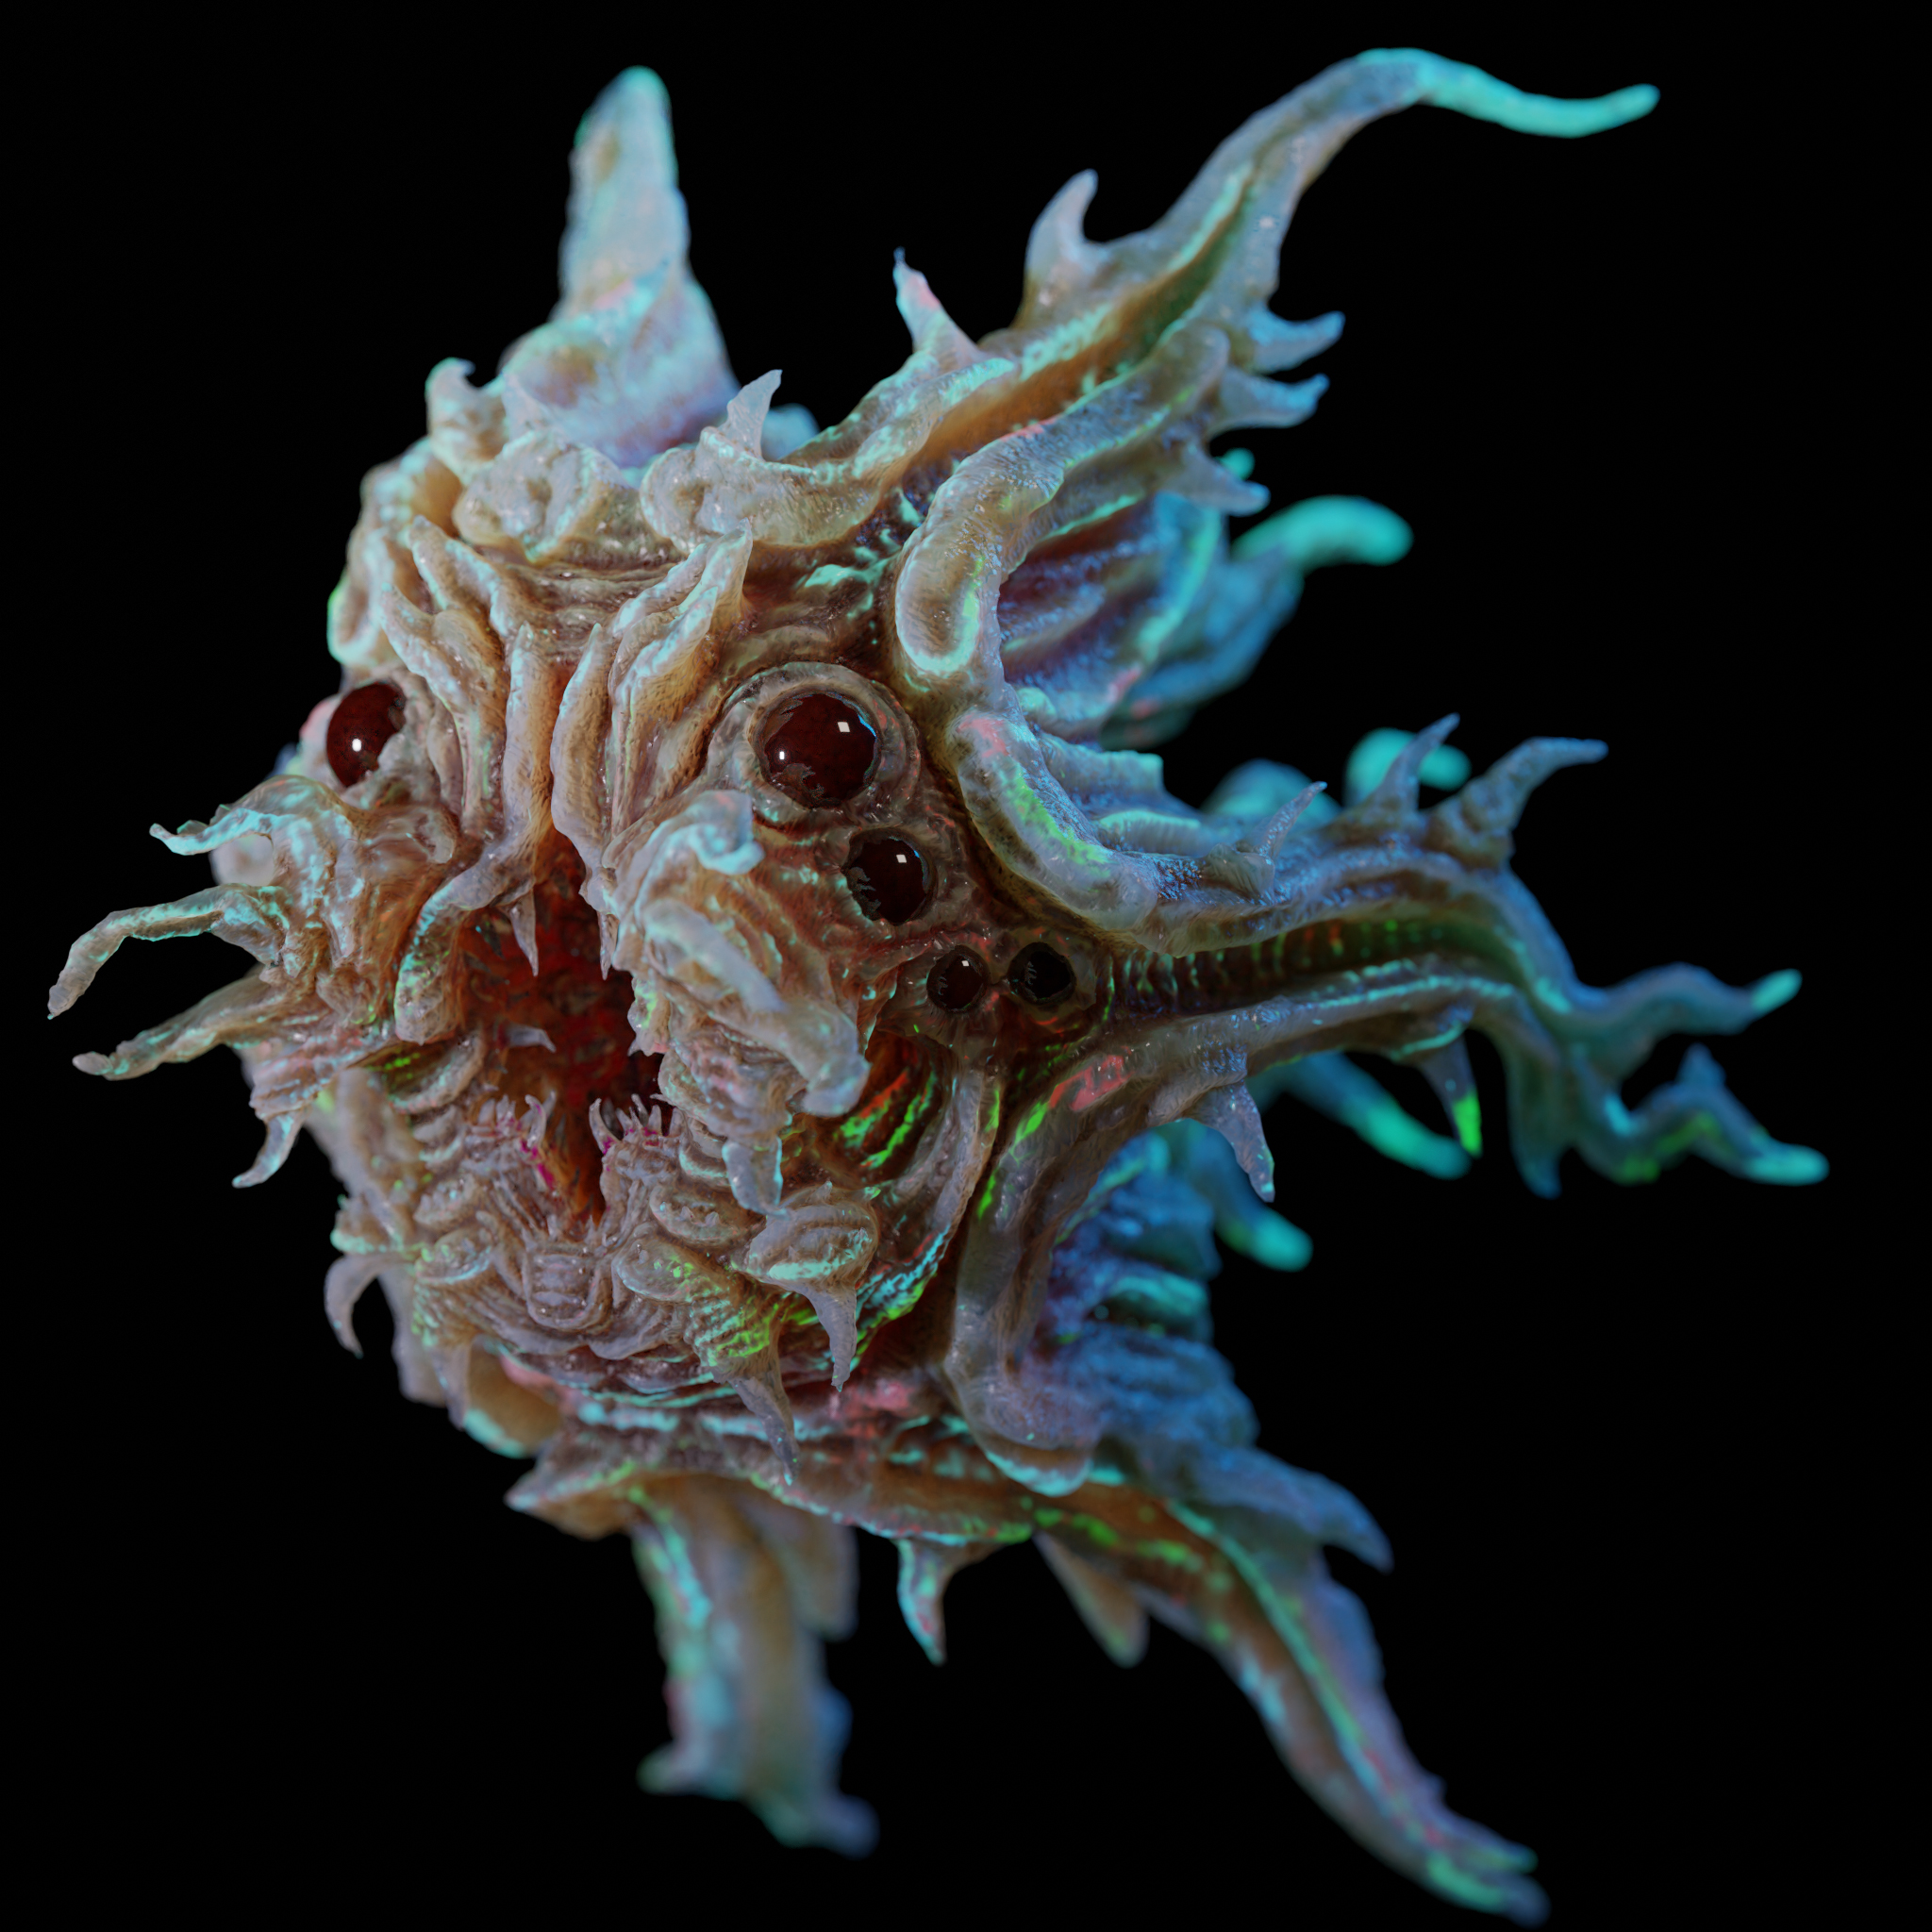 Alien monster sculpted and textured